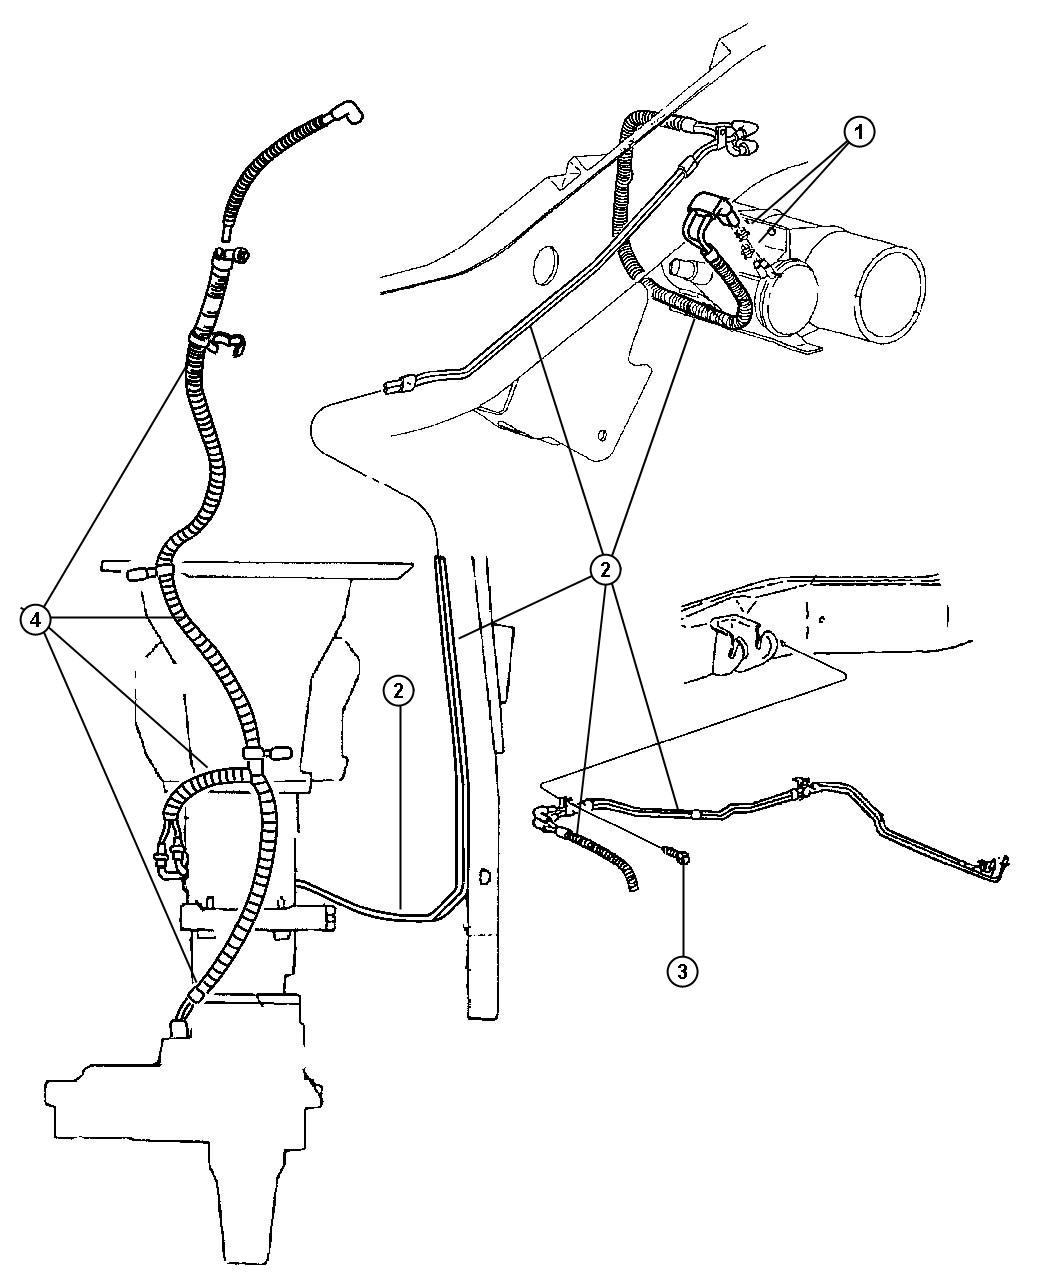 2002 dodge ram 2500 vacuum lines,front axle and transfer case 2002 dodge ram 2500 vacuum line diagram wiring diagram for 2002 dodge ram 2500